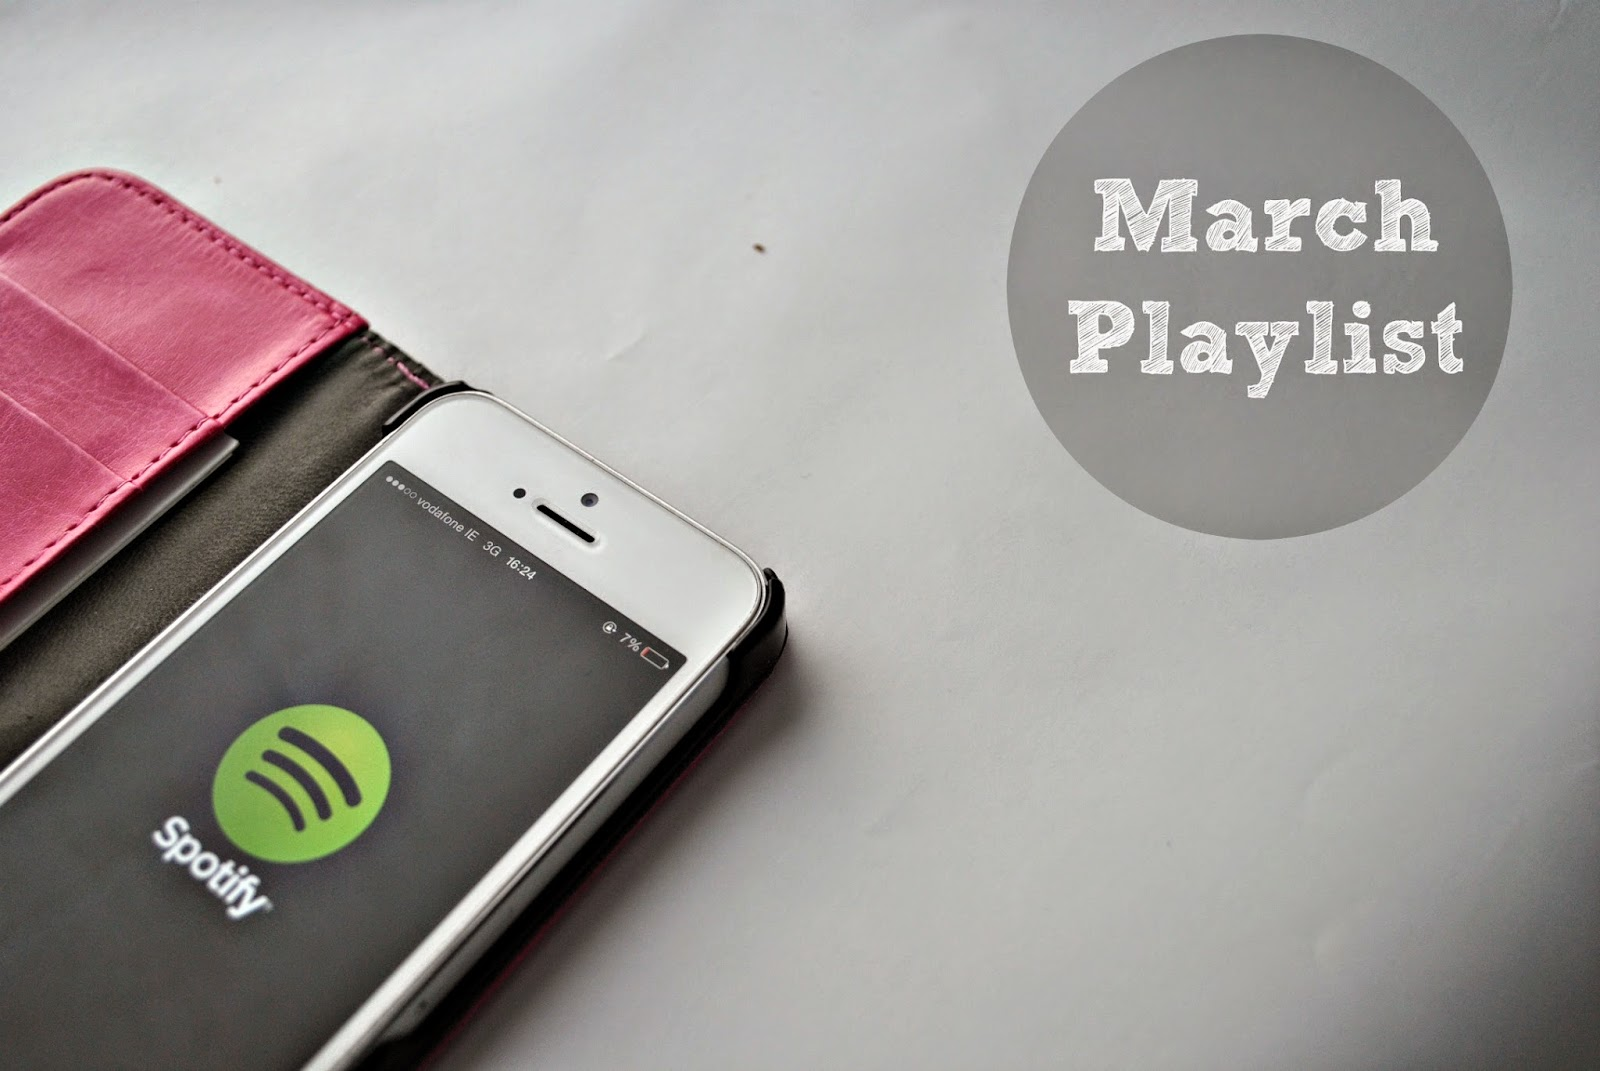 An iPhone with Spotify and a playlist